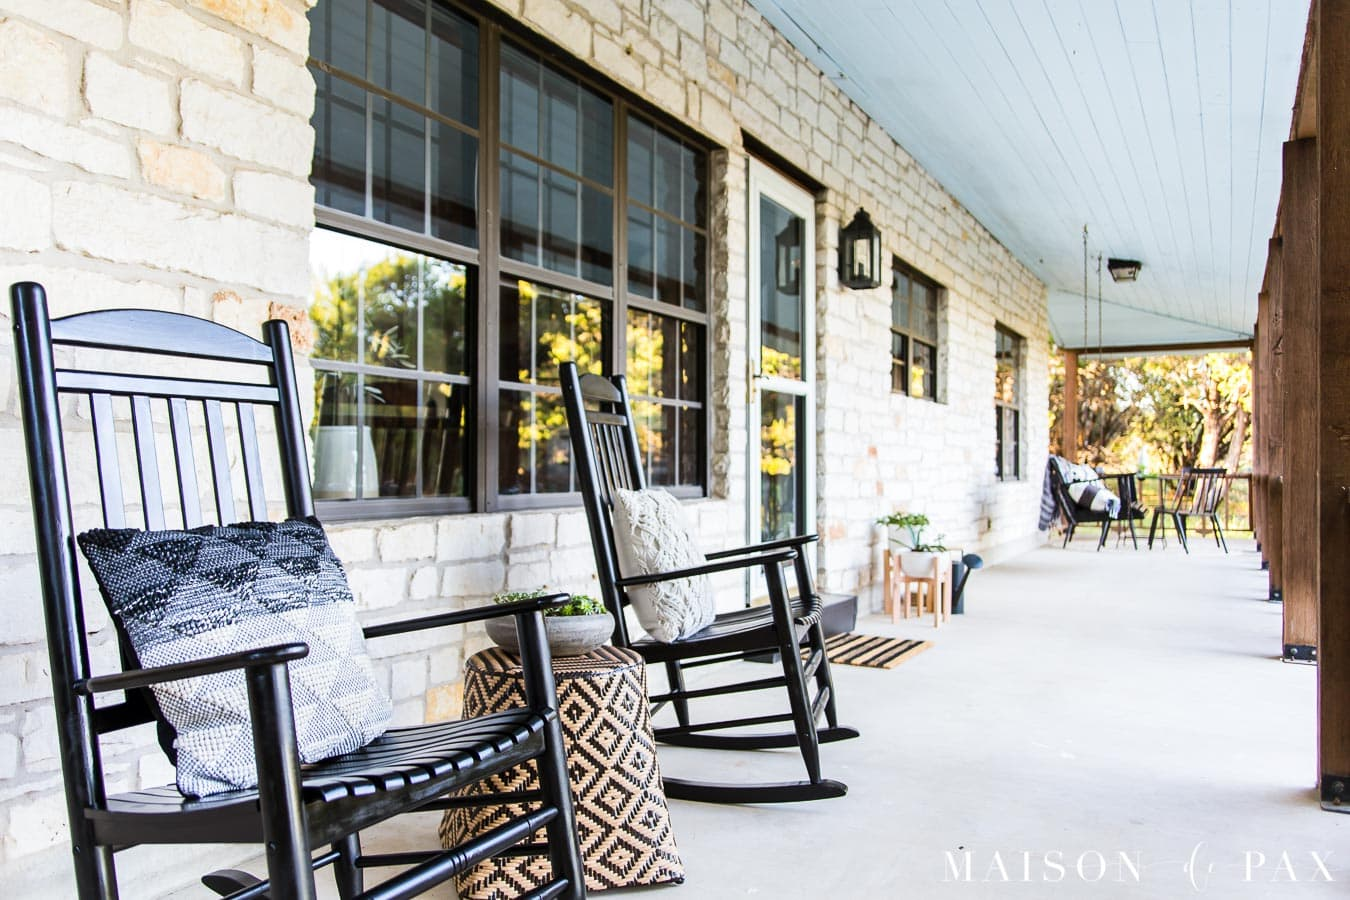 black rocking chairs on a porch with austin stone and black windows | Maison de Pax